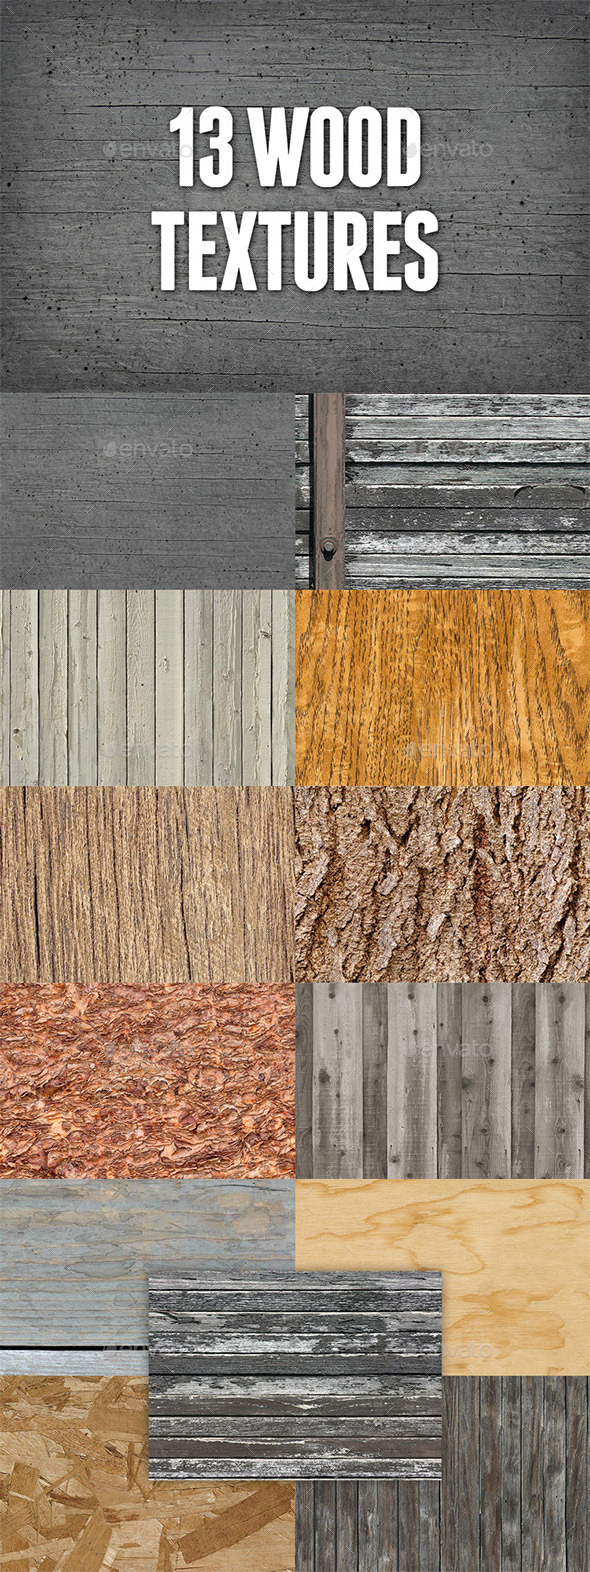 Seamless Wood Textures Pack 1 - Wood Textures